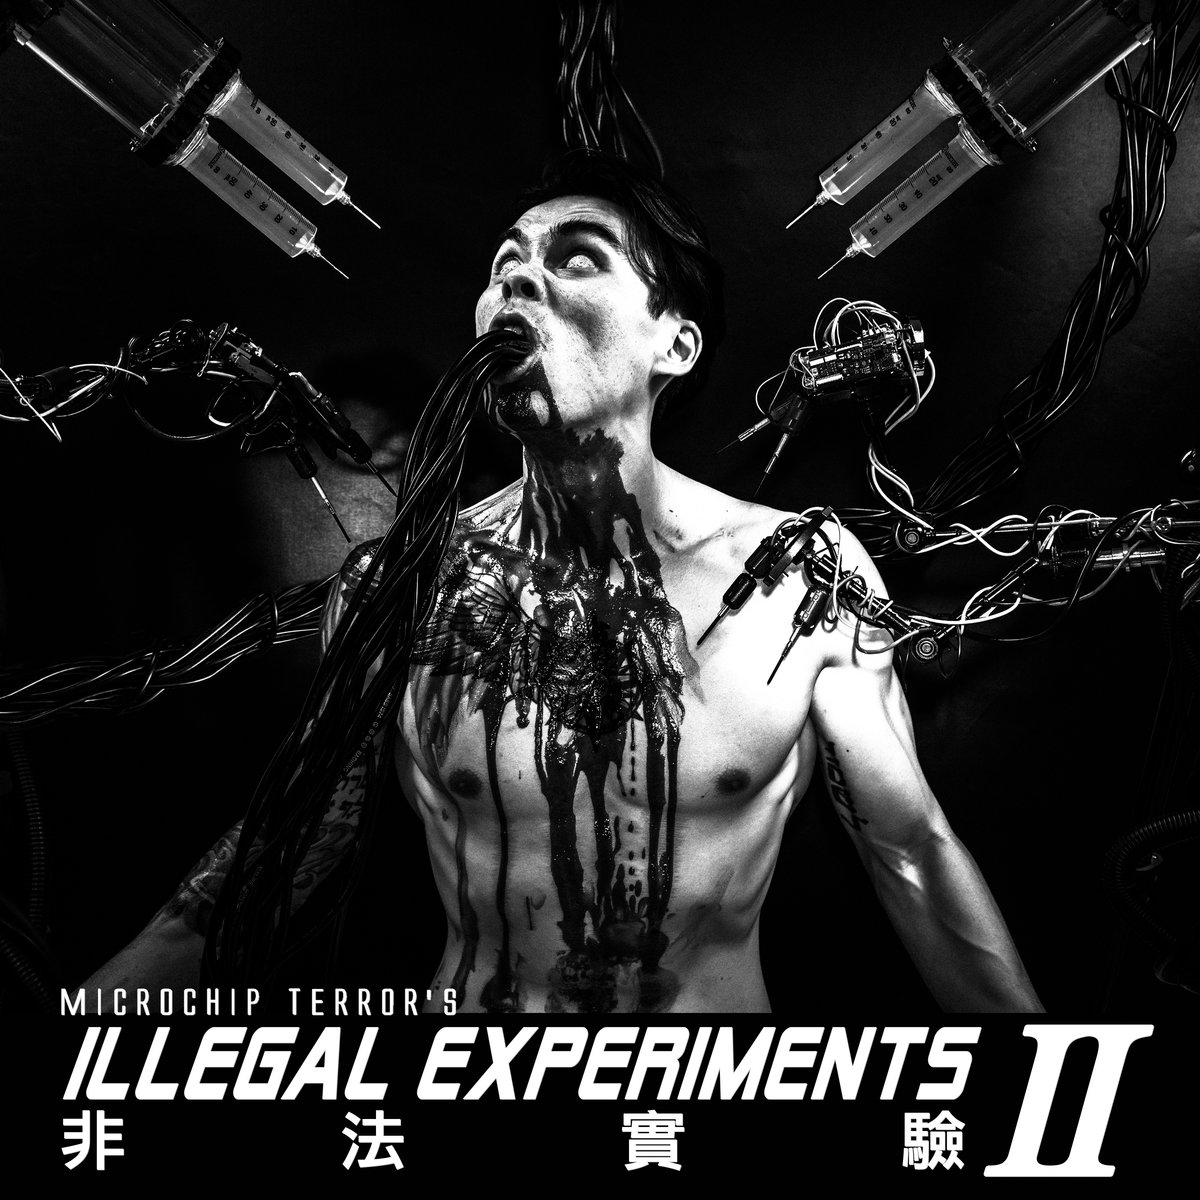 a2661781873 10 - MICROCHIP TERROR's - 'Illegal Experiments 2'